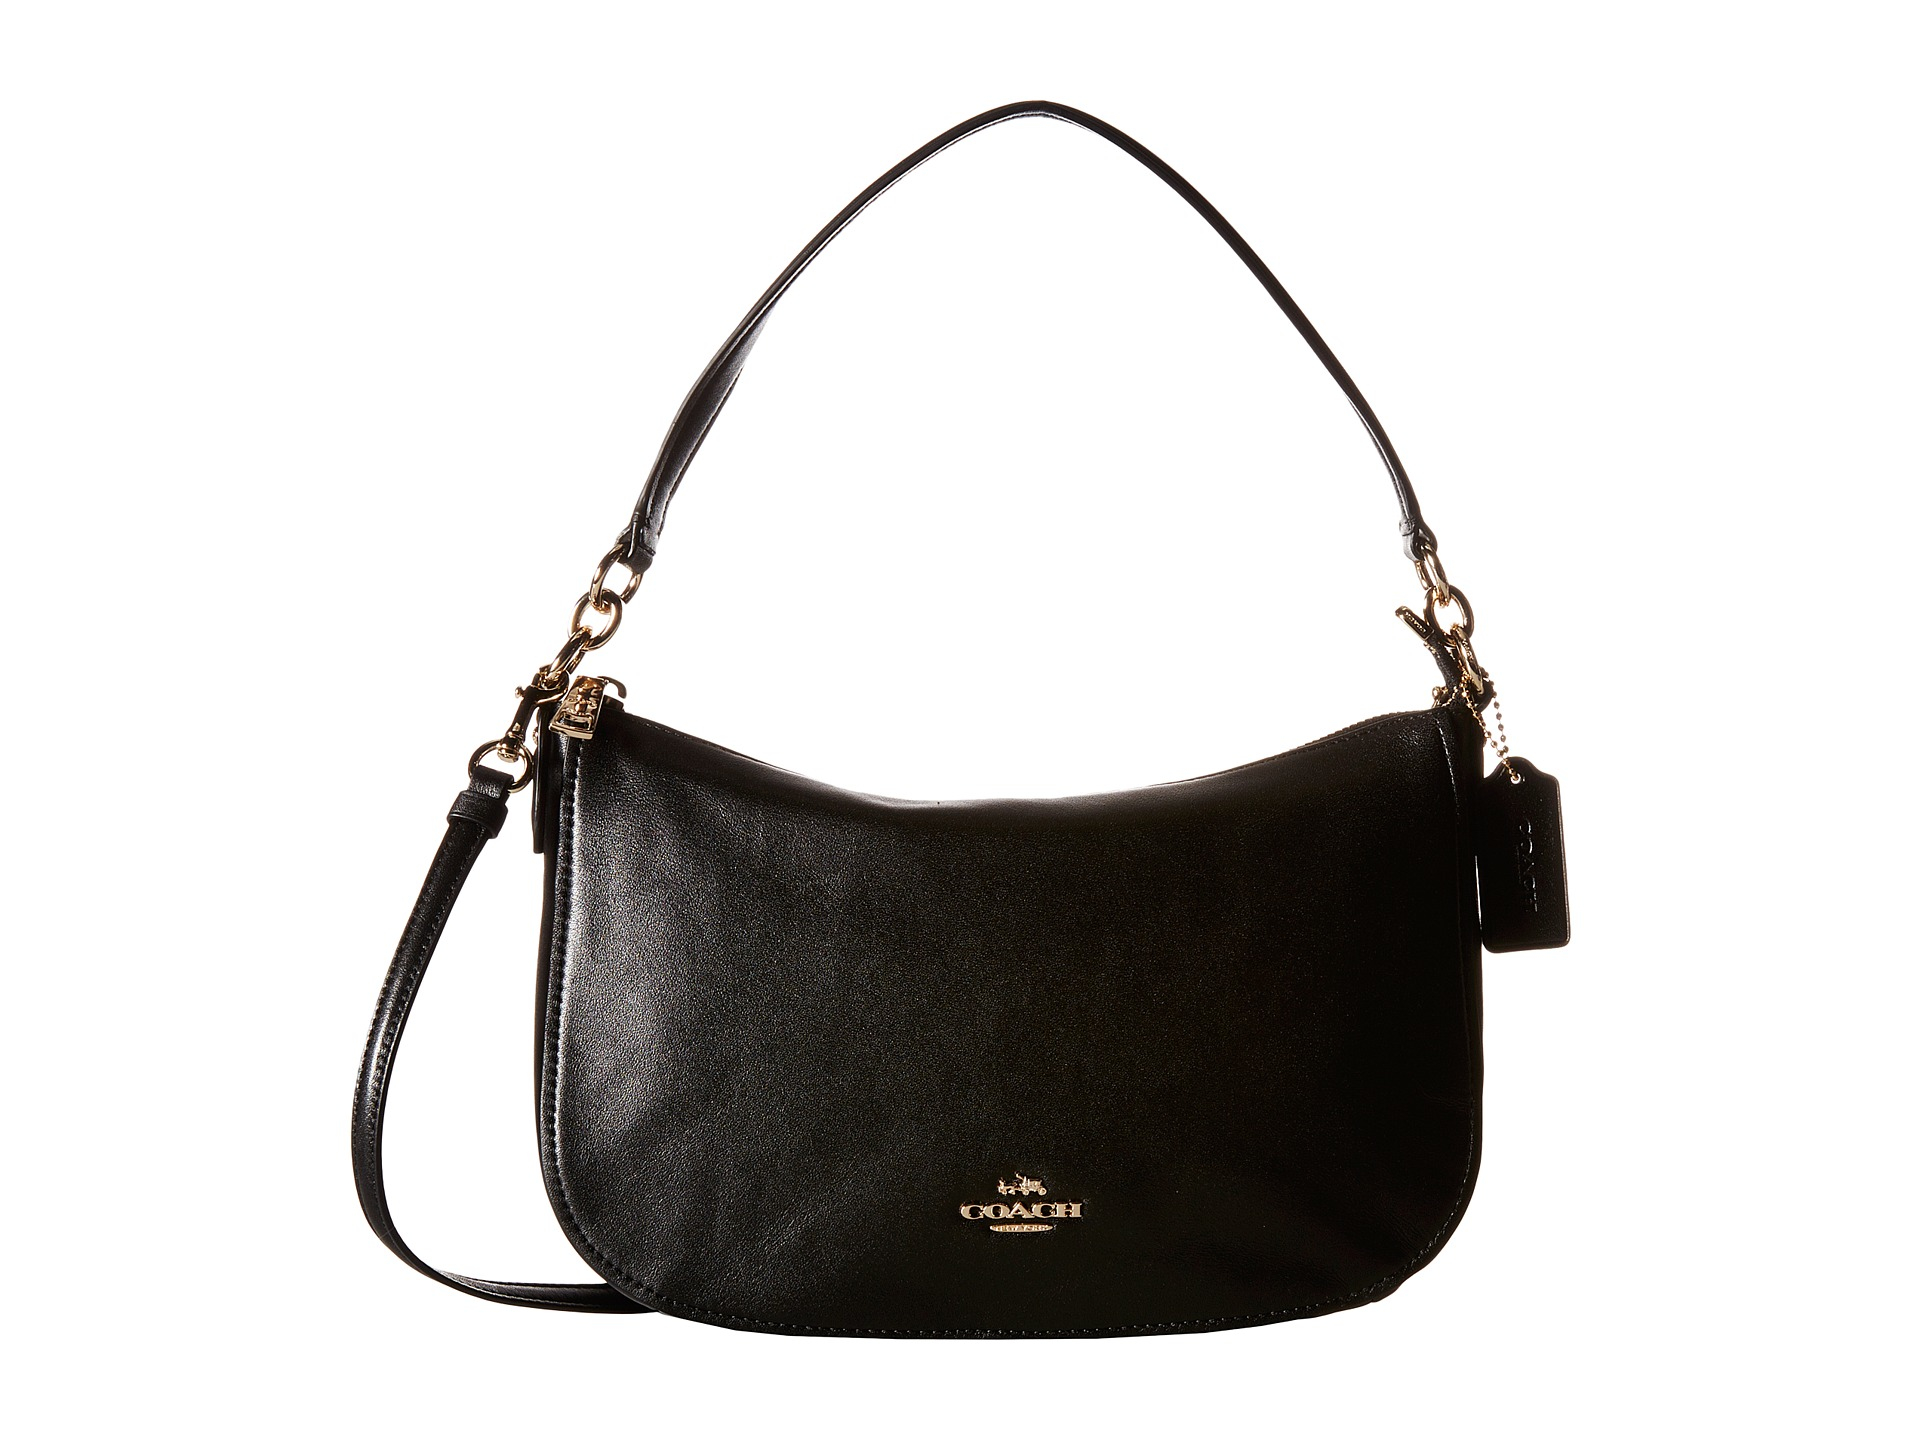 d6ac97f558 france coach chelsea crossbody in pebble leather dark antique nickel rouge  ebe5b 3dc92  best price lyst coach chelsea crossbody in black 558c3 4b078